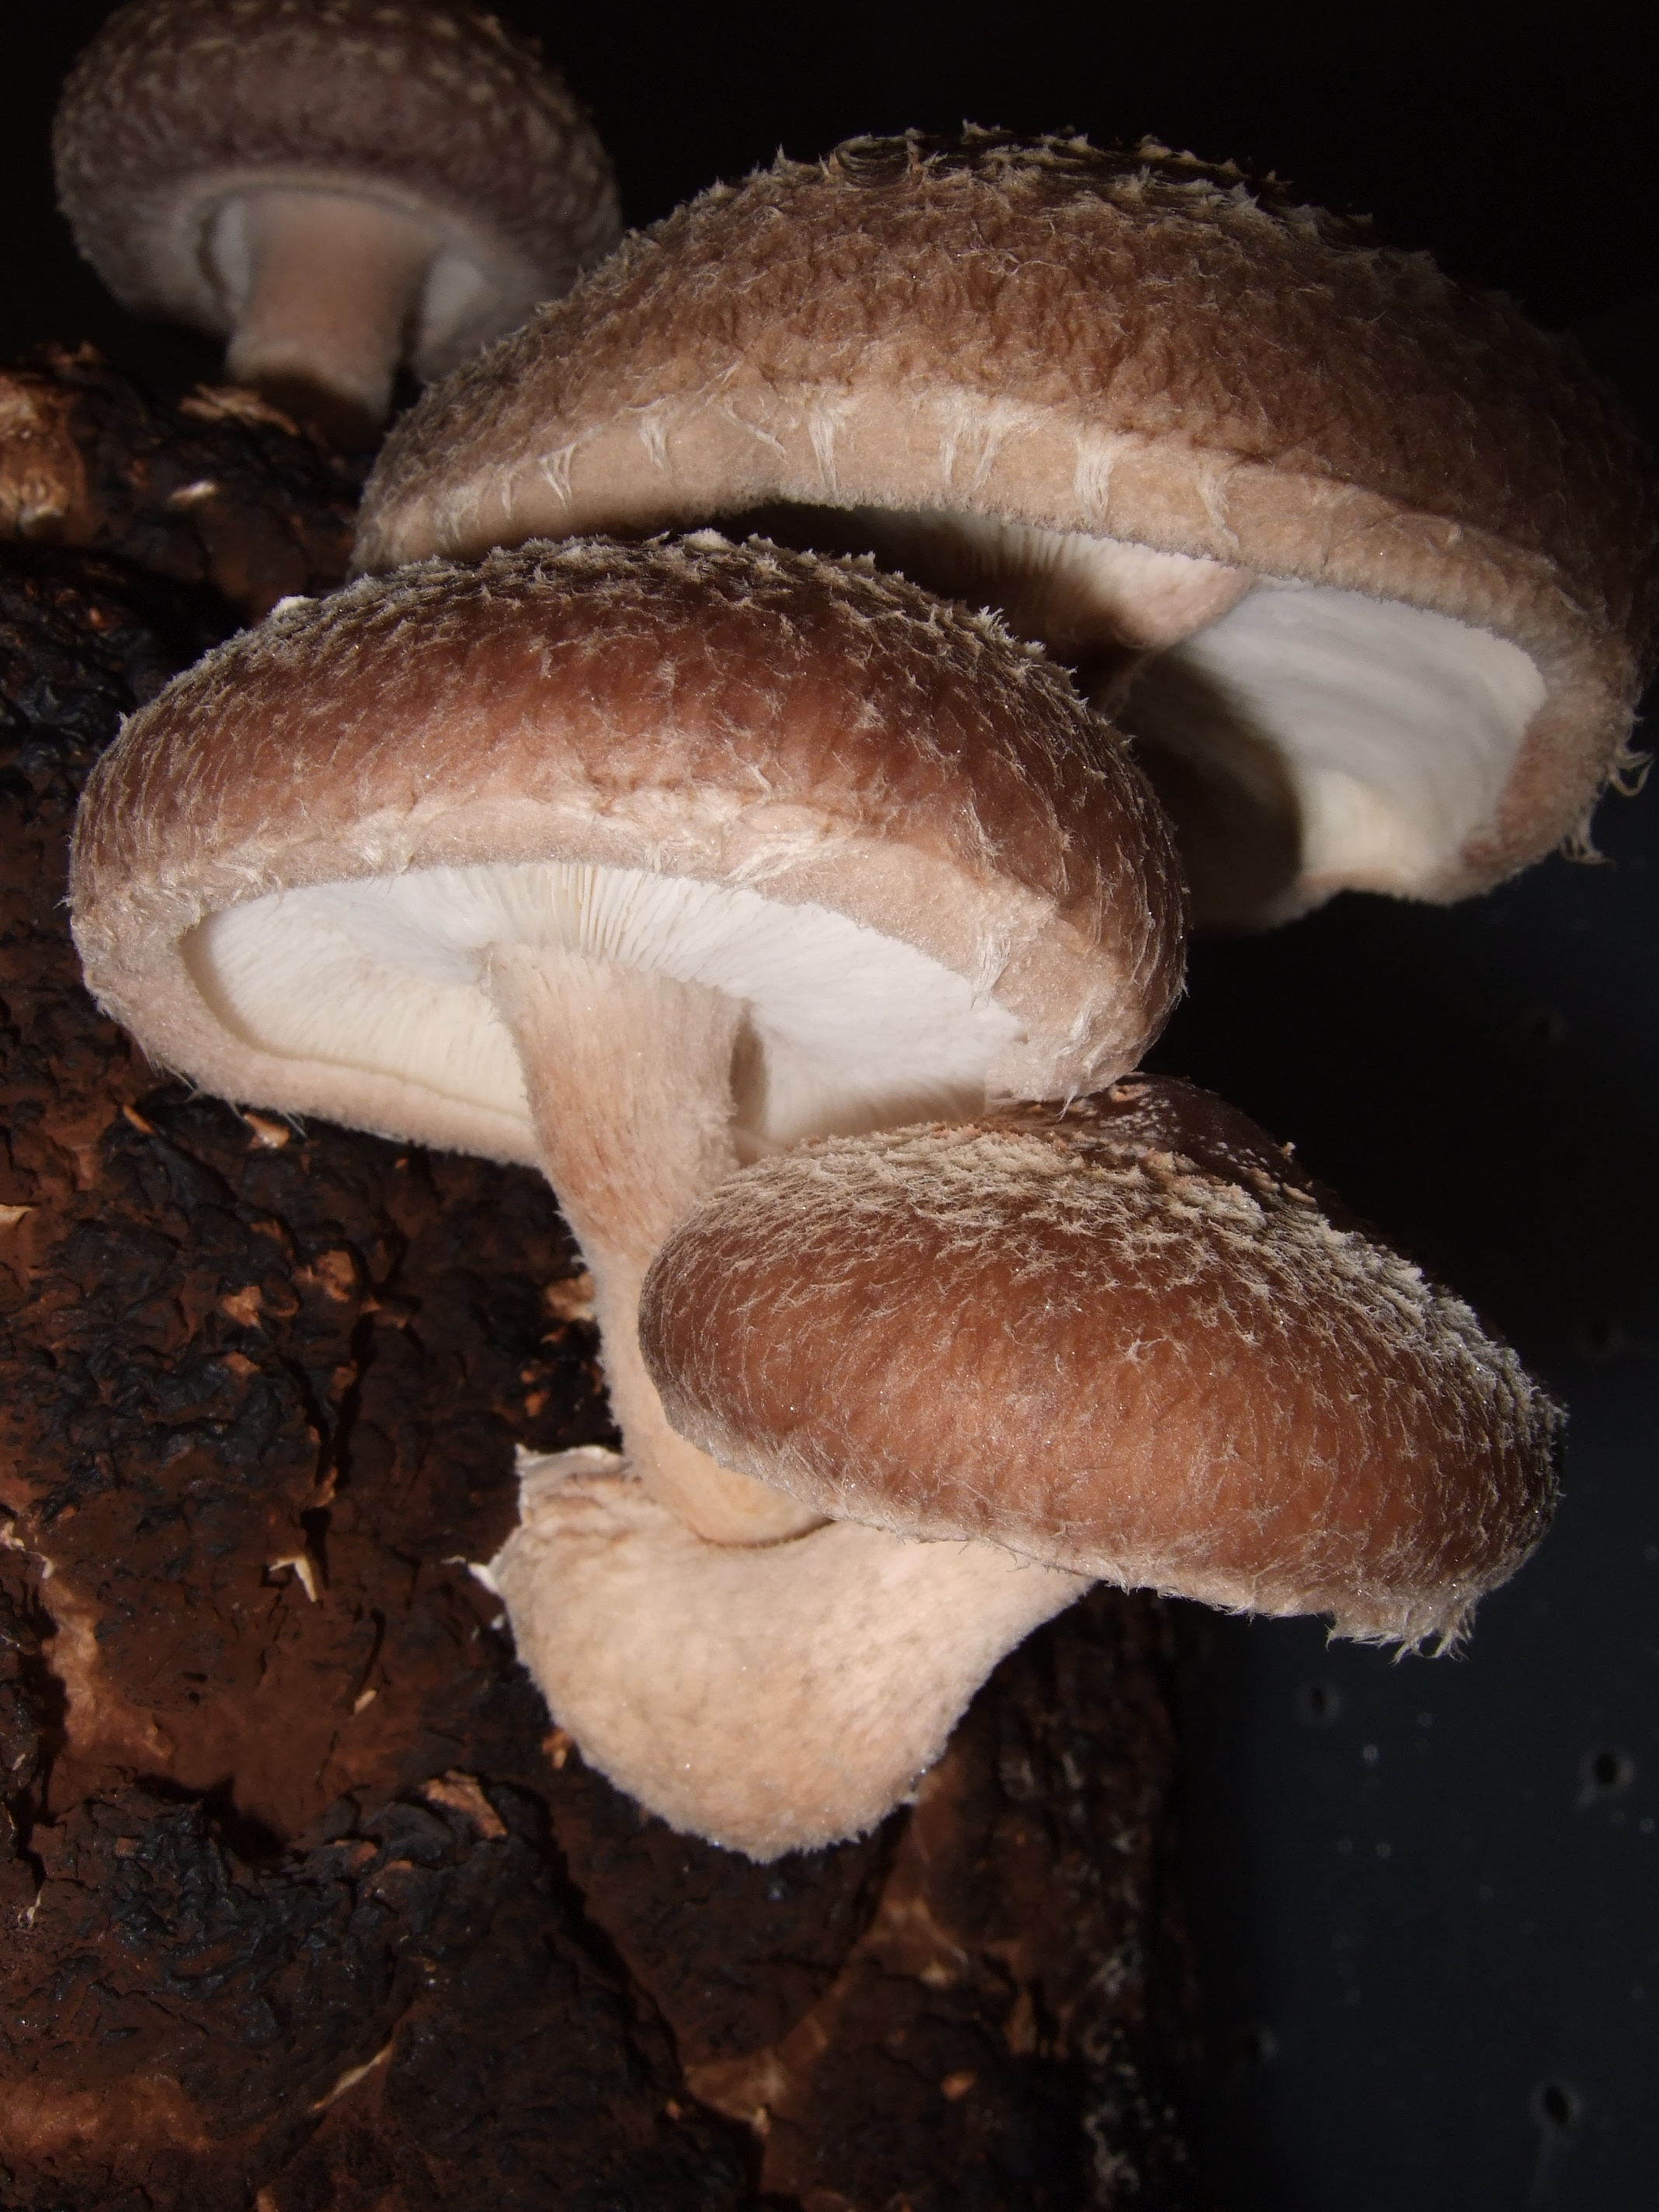 Shiitakegrowing Mushrooms for Lowering Cholesterol